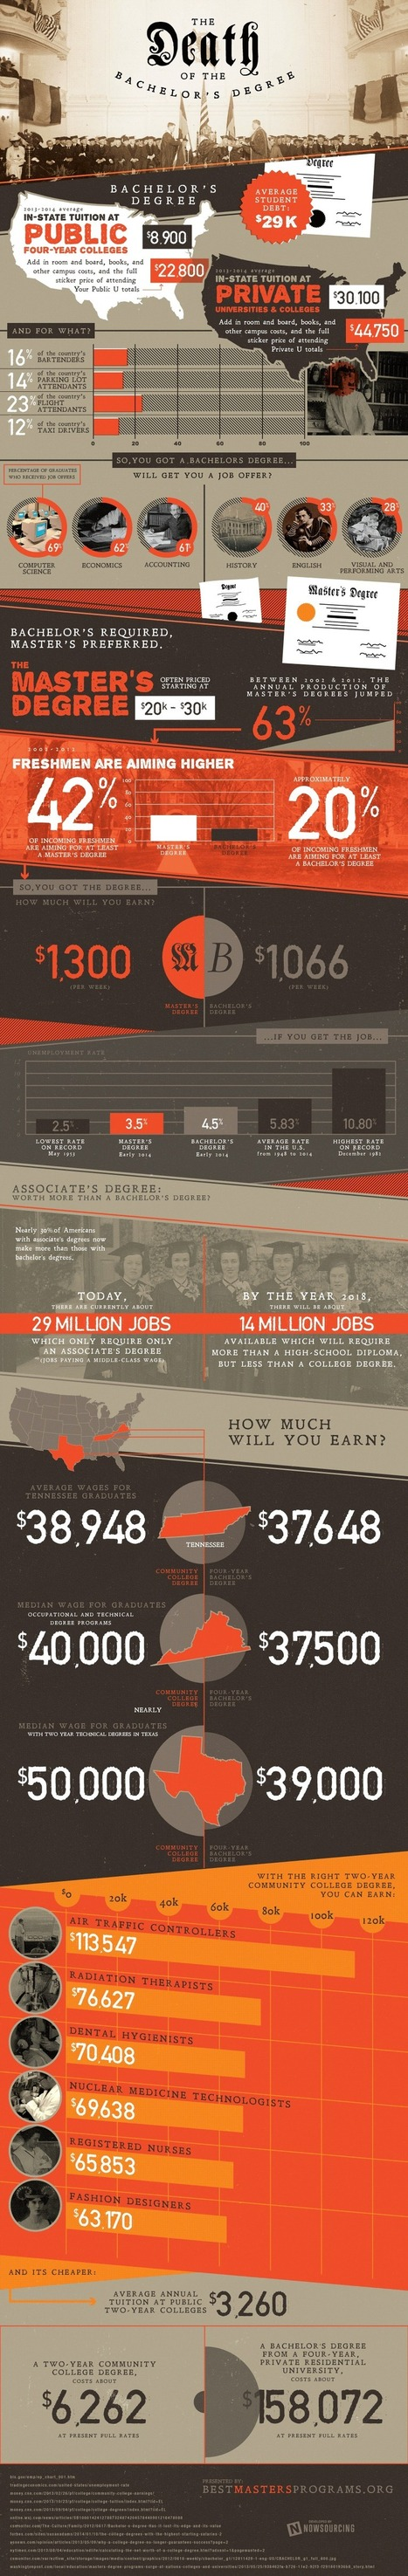 The Demise of the Bachelor's Degree [INFOGRAPHIC] | College Readiness | Scoop.it